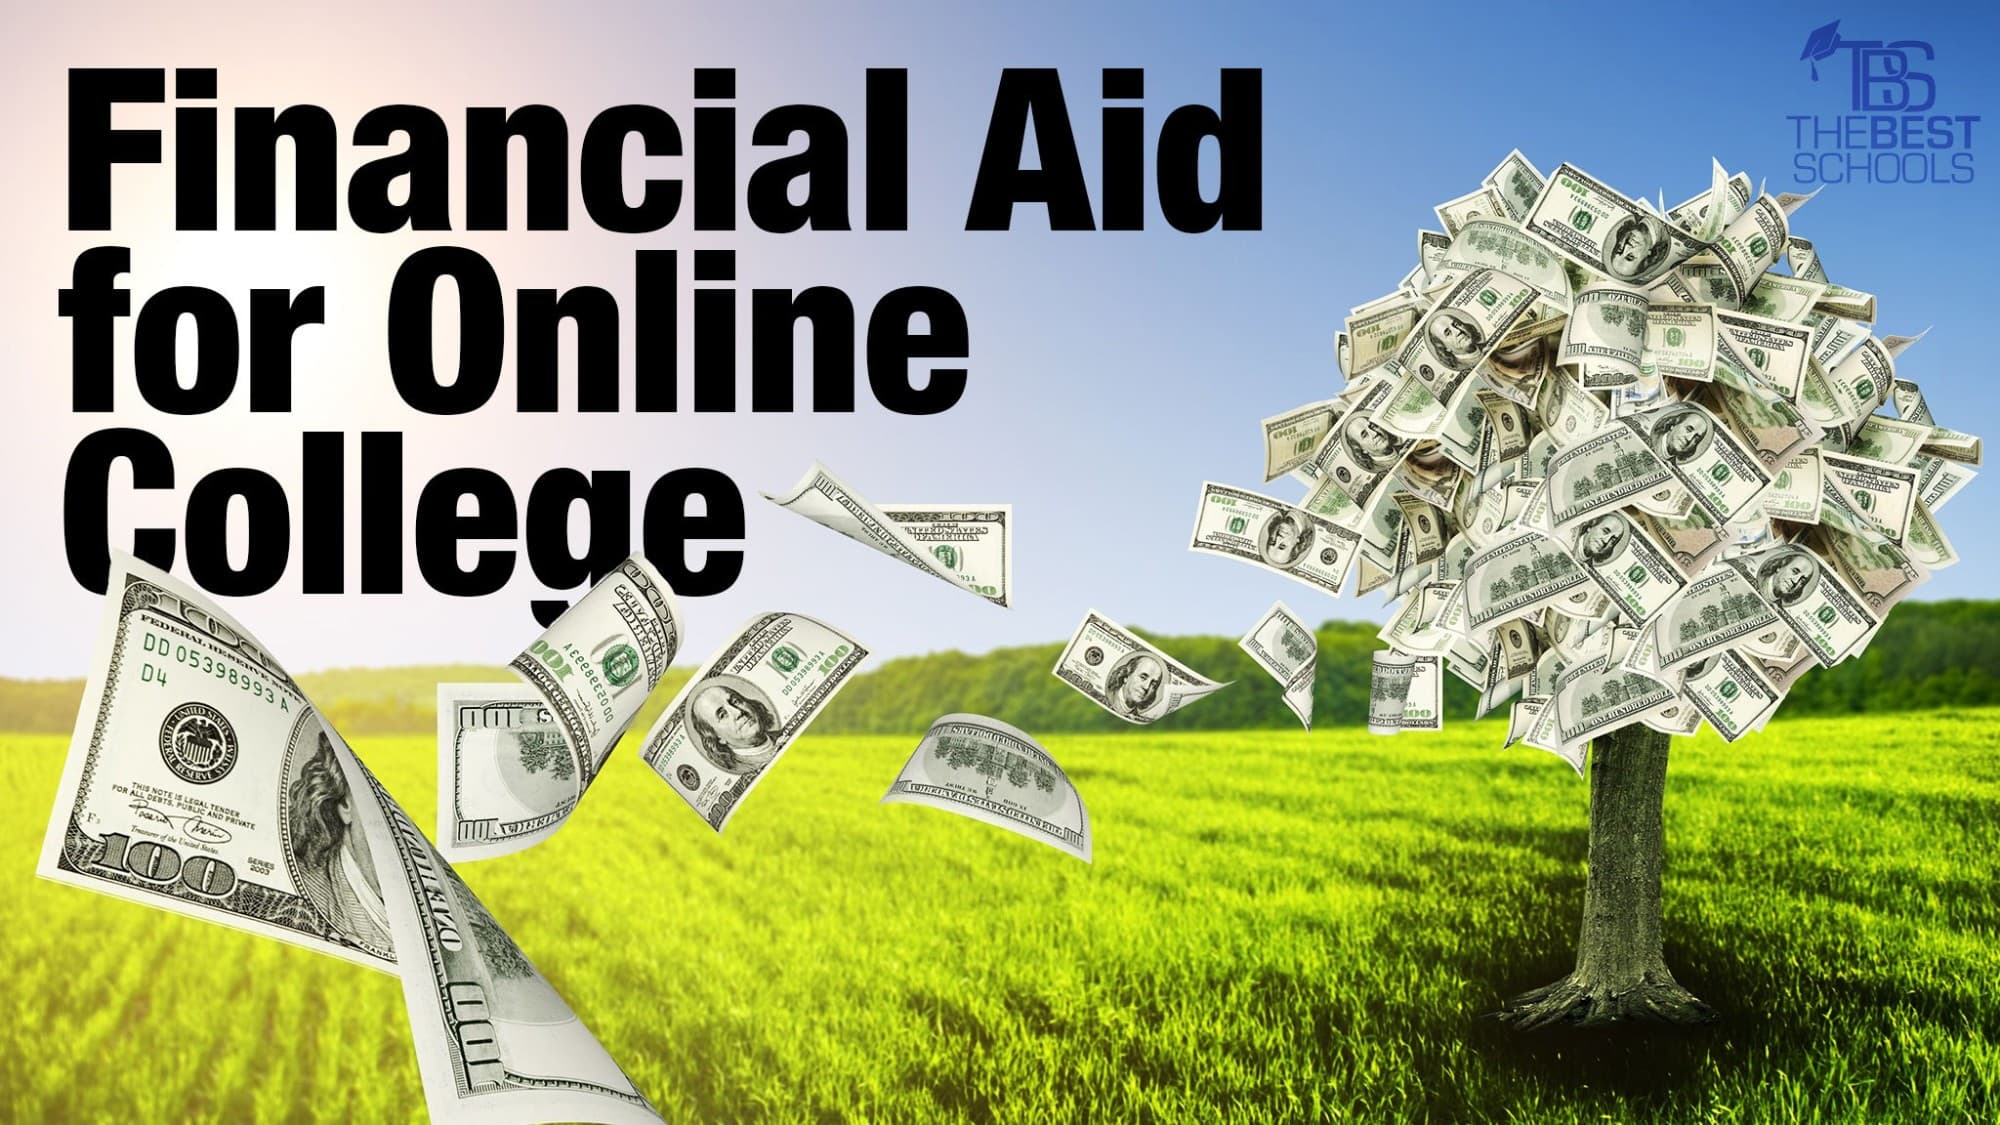 Financial Aid For Online College Everything You Need To Know And Do